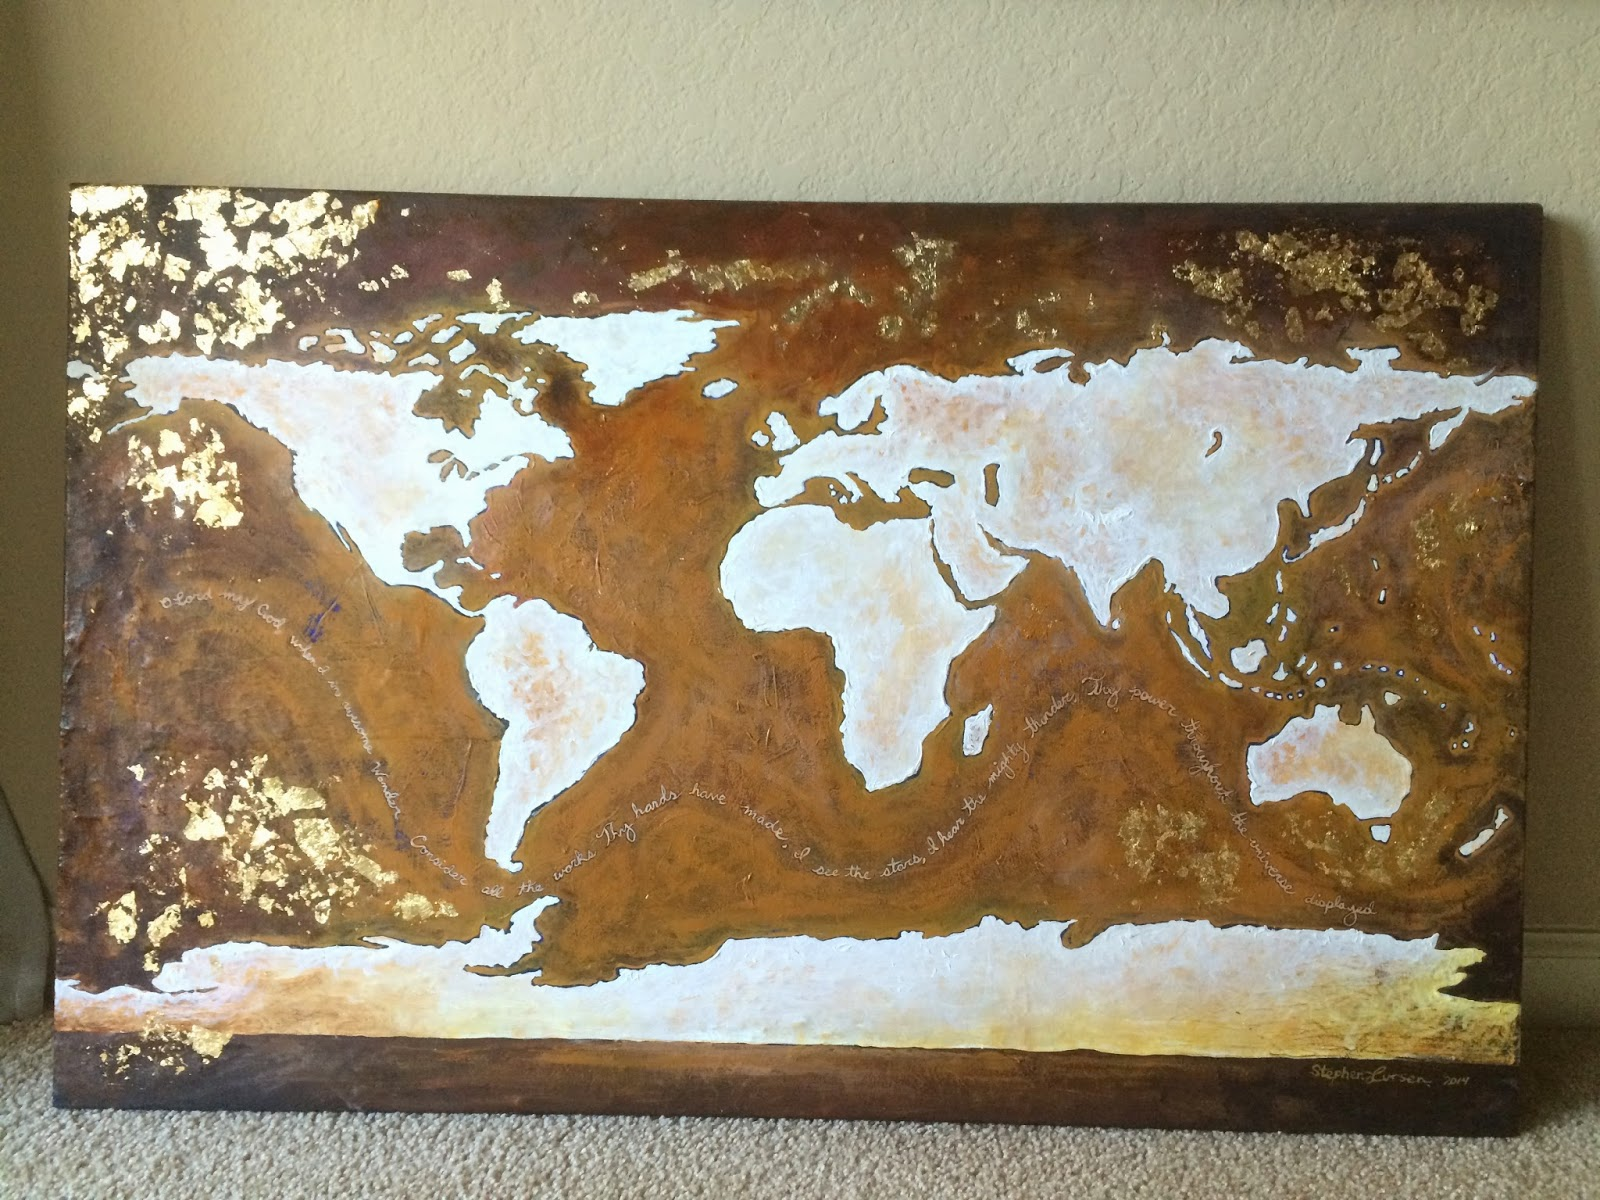 Stephen lursen art january 2015 custom world map with gold leaf sold gumiabroncs